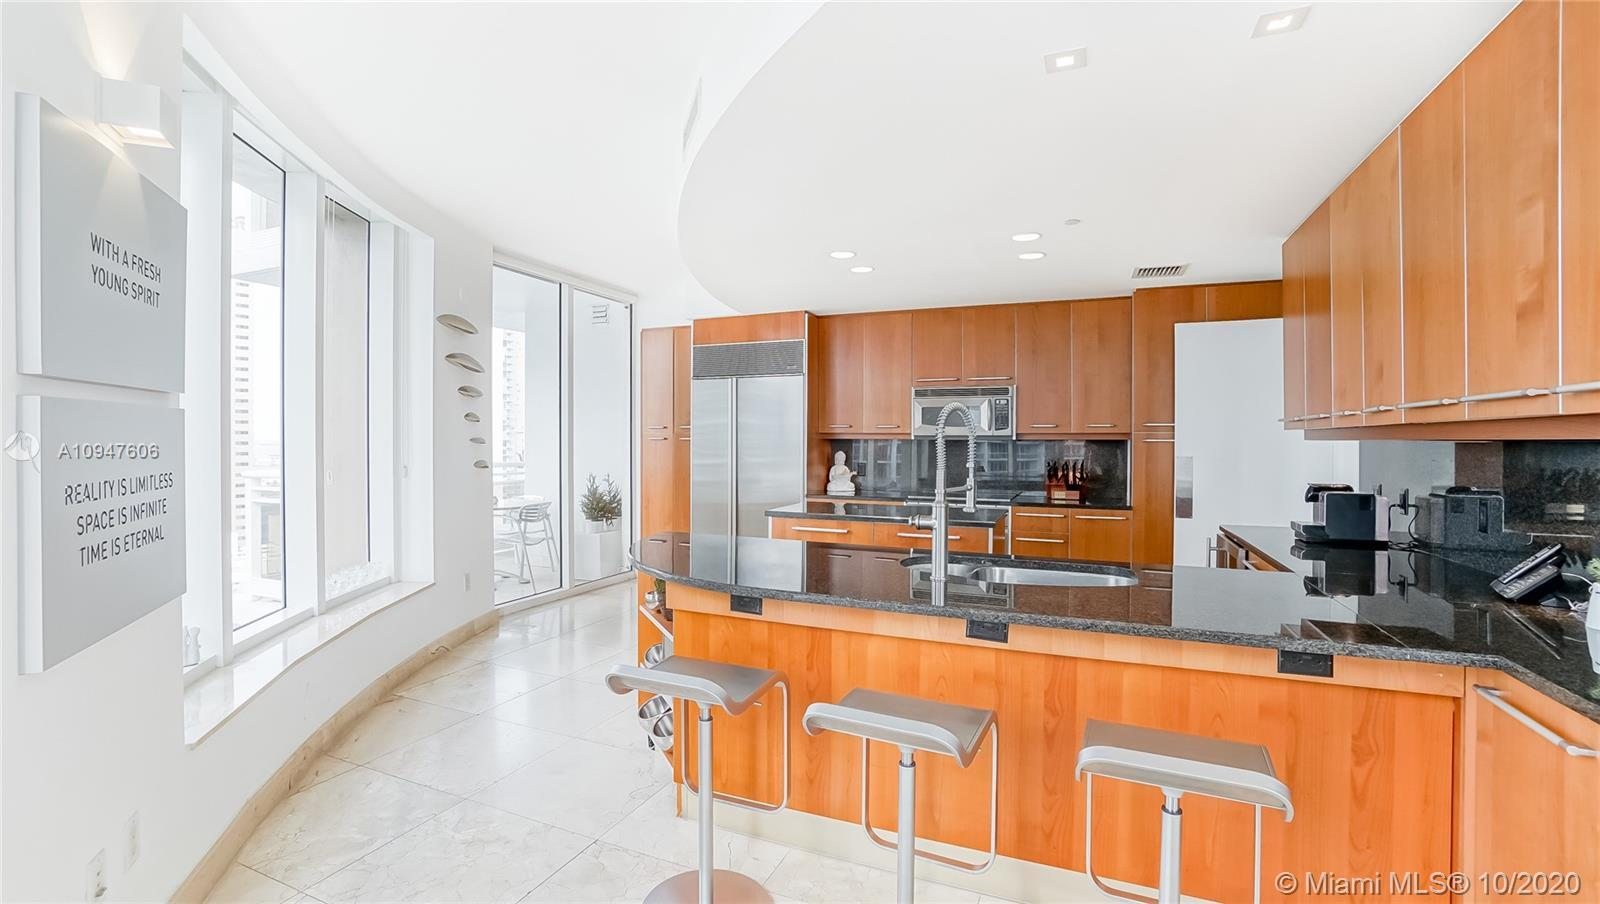 Most desirable line in the entire building. 3 bedroom corner unit in the most luxurious building on